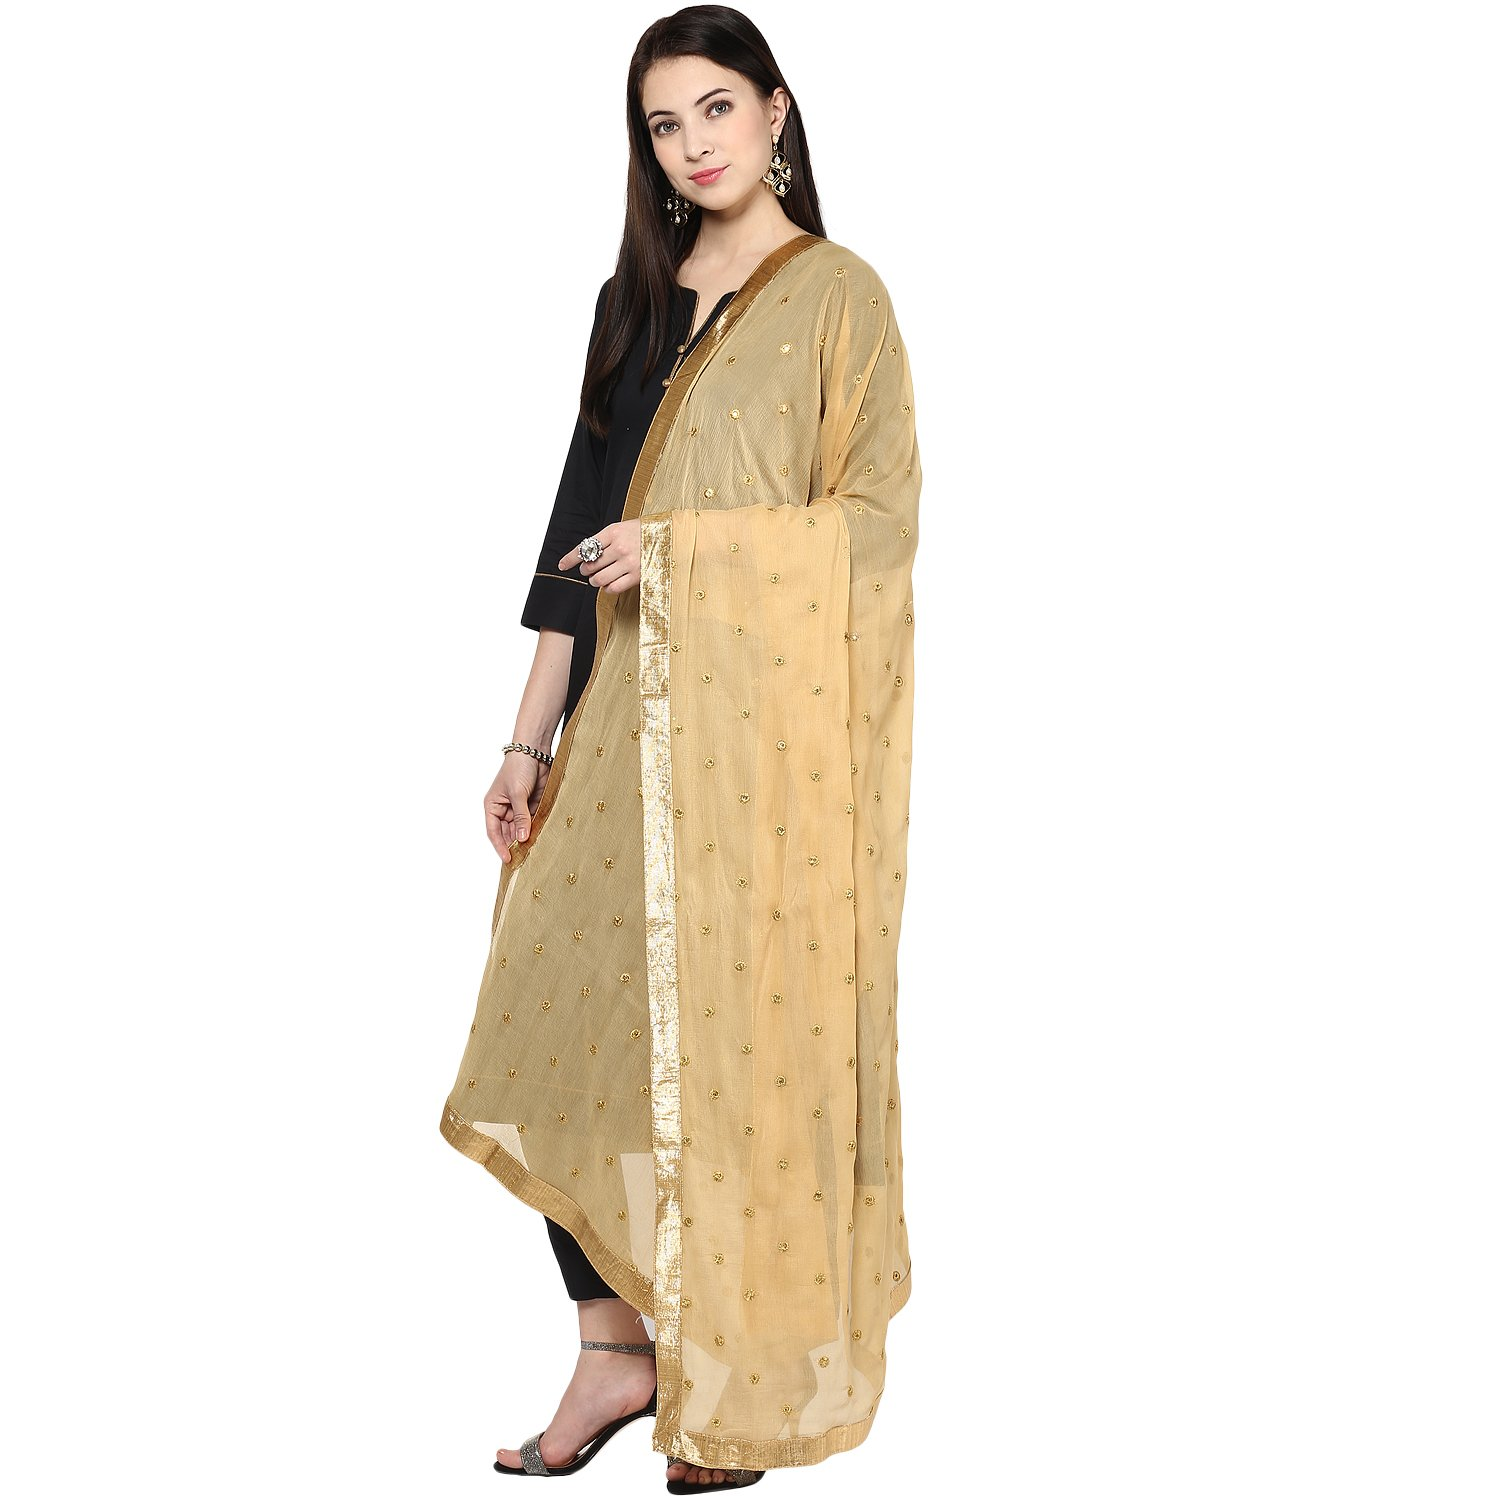 7b4d6dc015 Dupatta: Buy Stoles online at best prices in India - Amazon.in